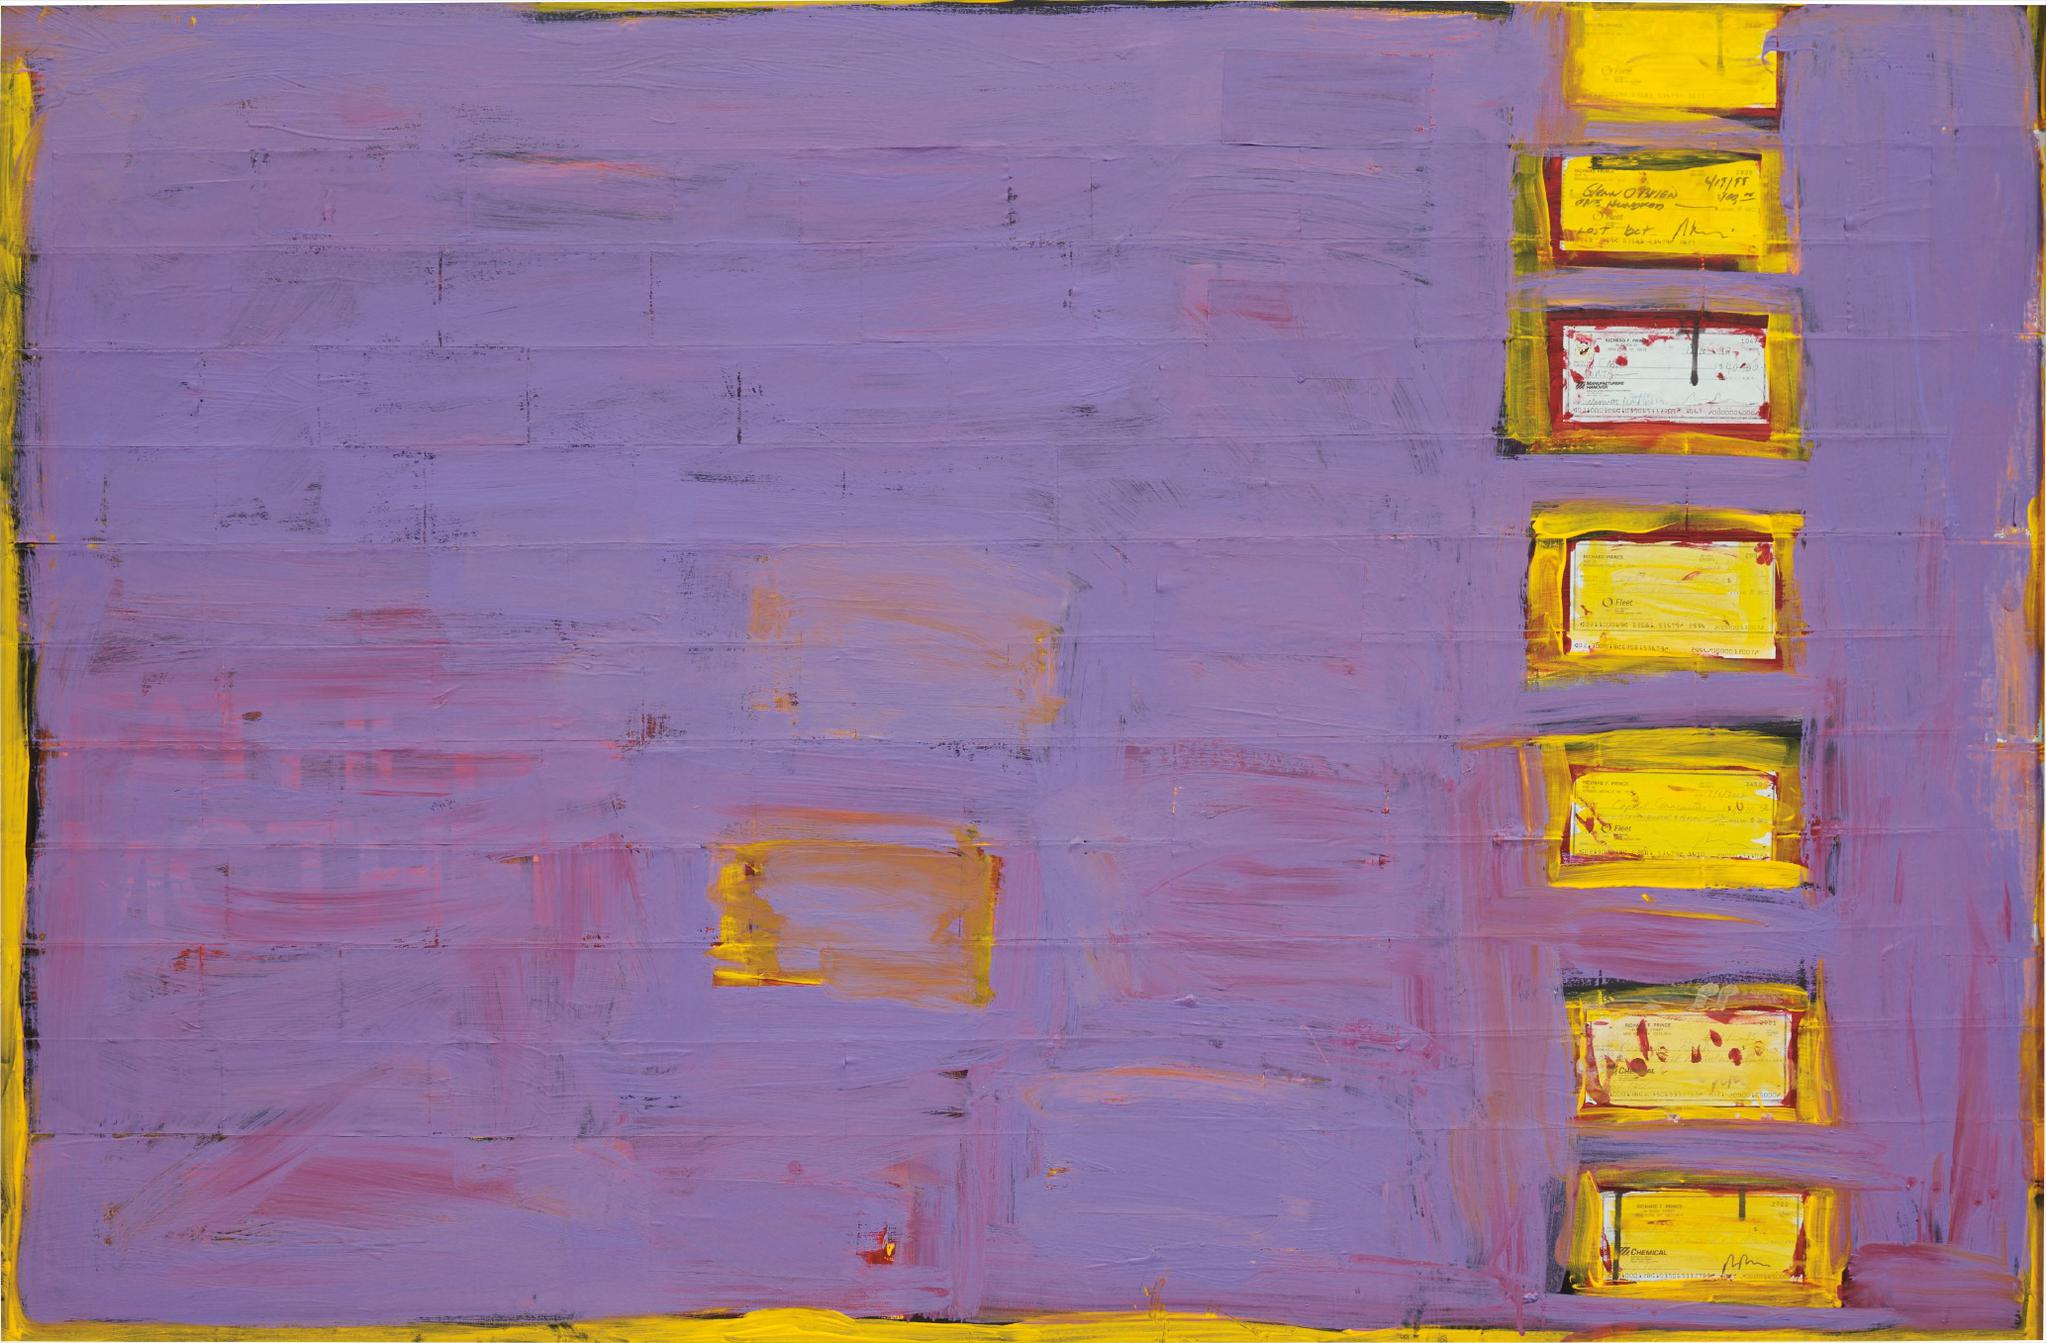 Richard Prince-Untitled (Check Painting) #18-2004